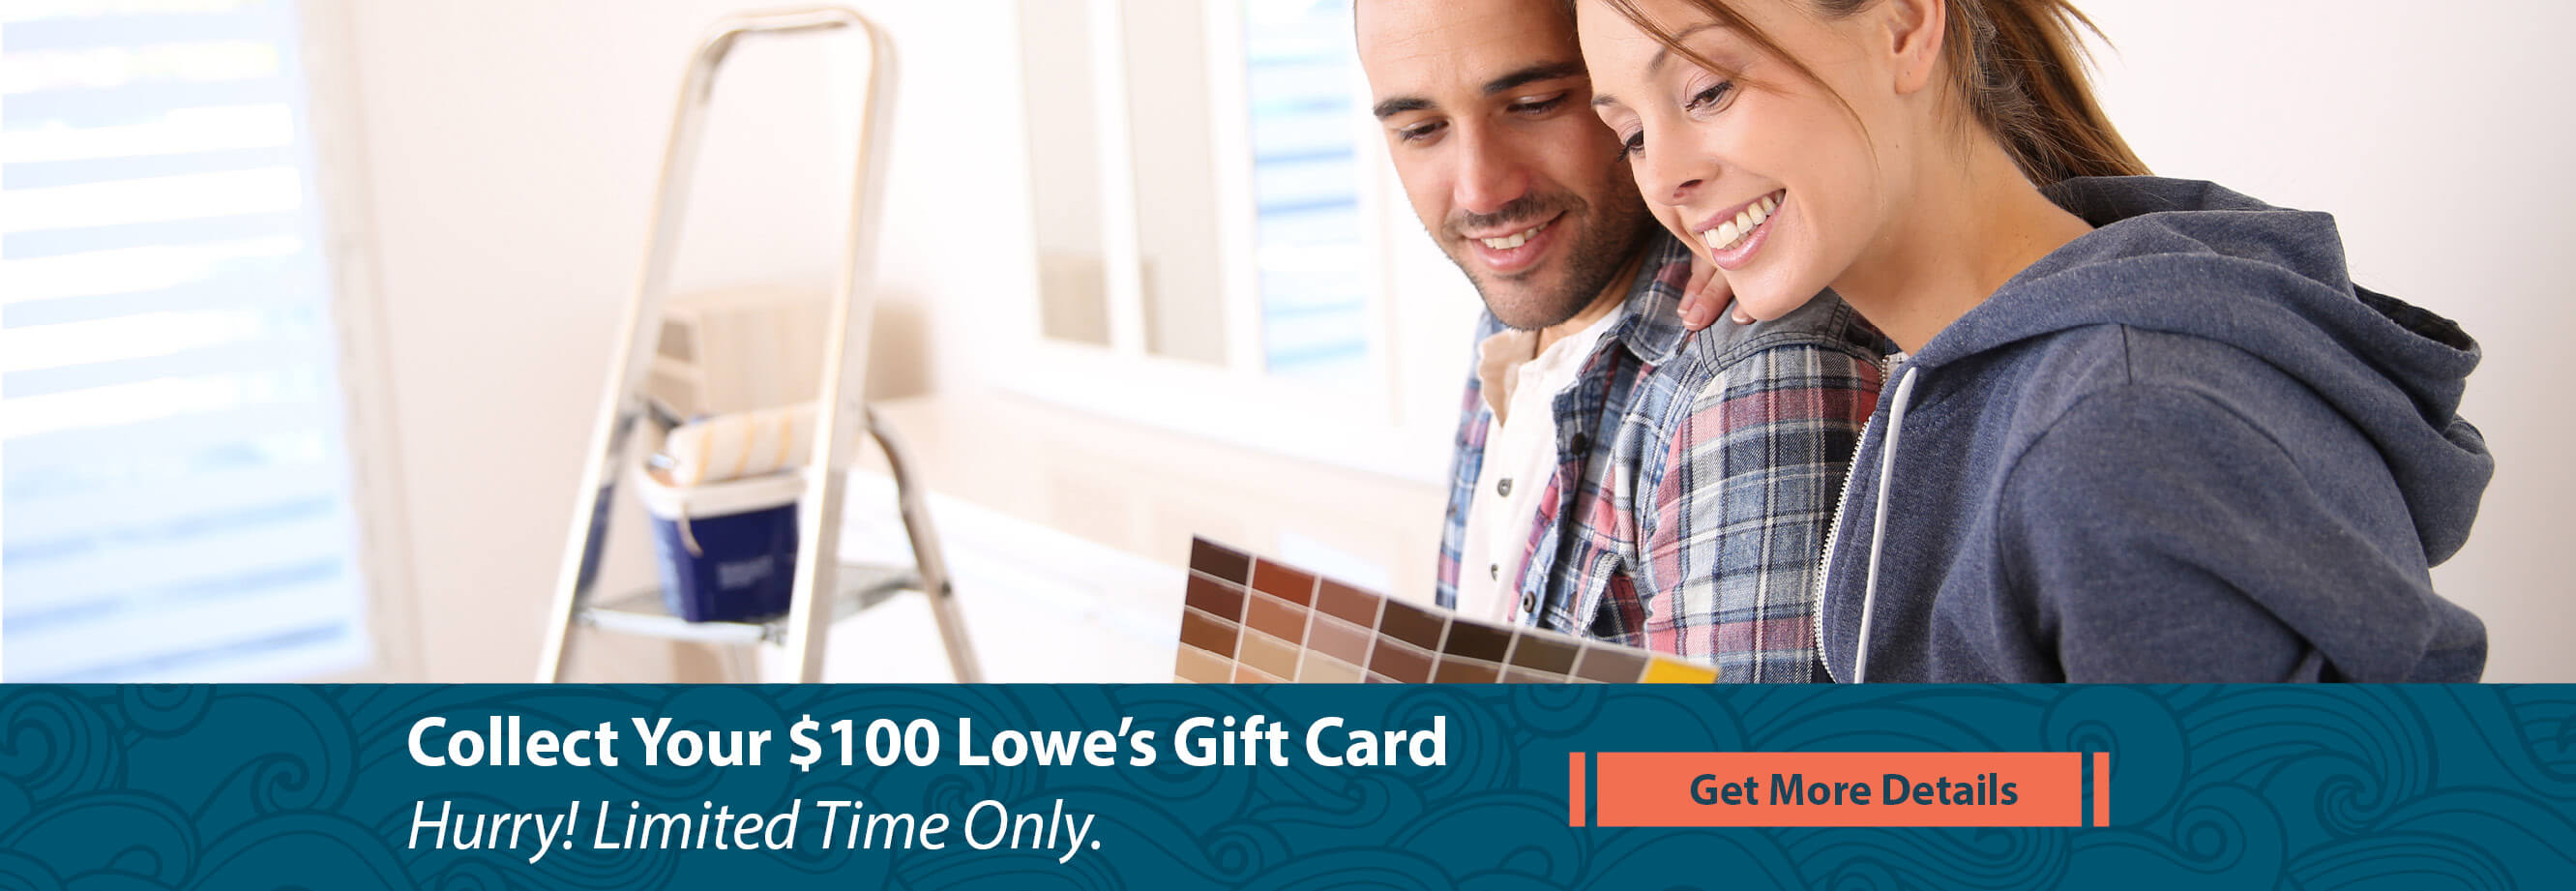 Collect Your $100 Lowe's Gift Card. Get Details Here